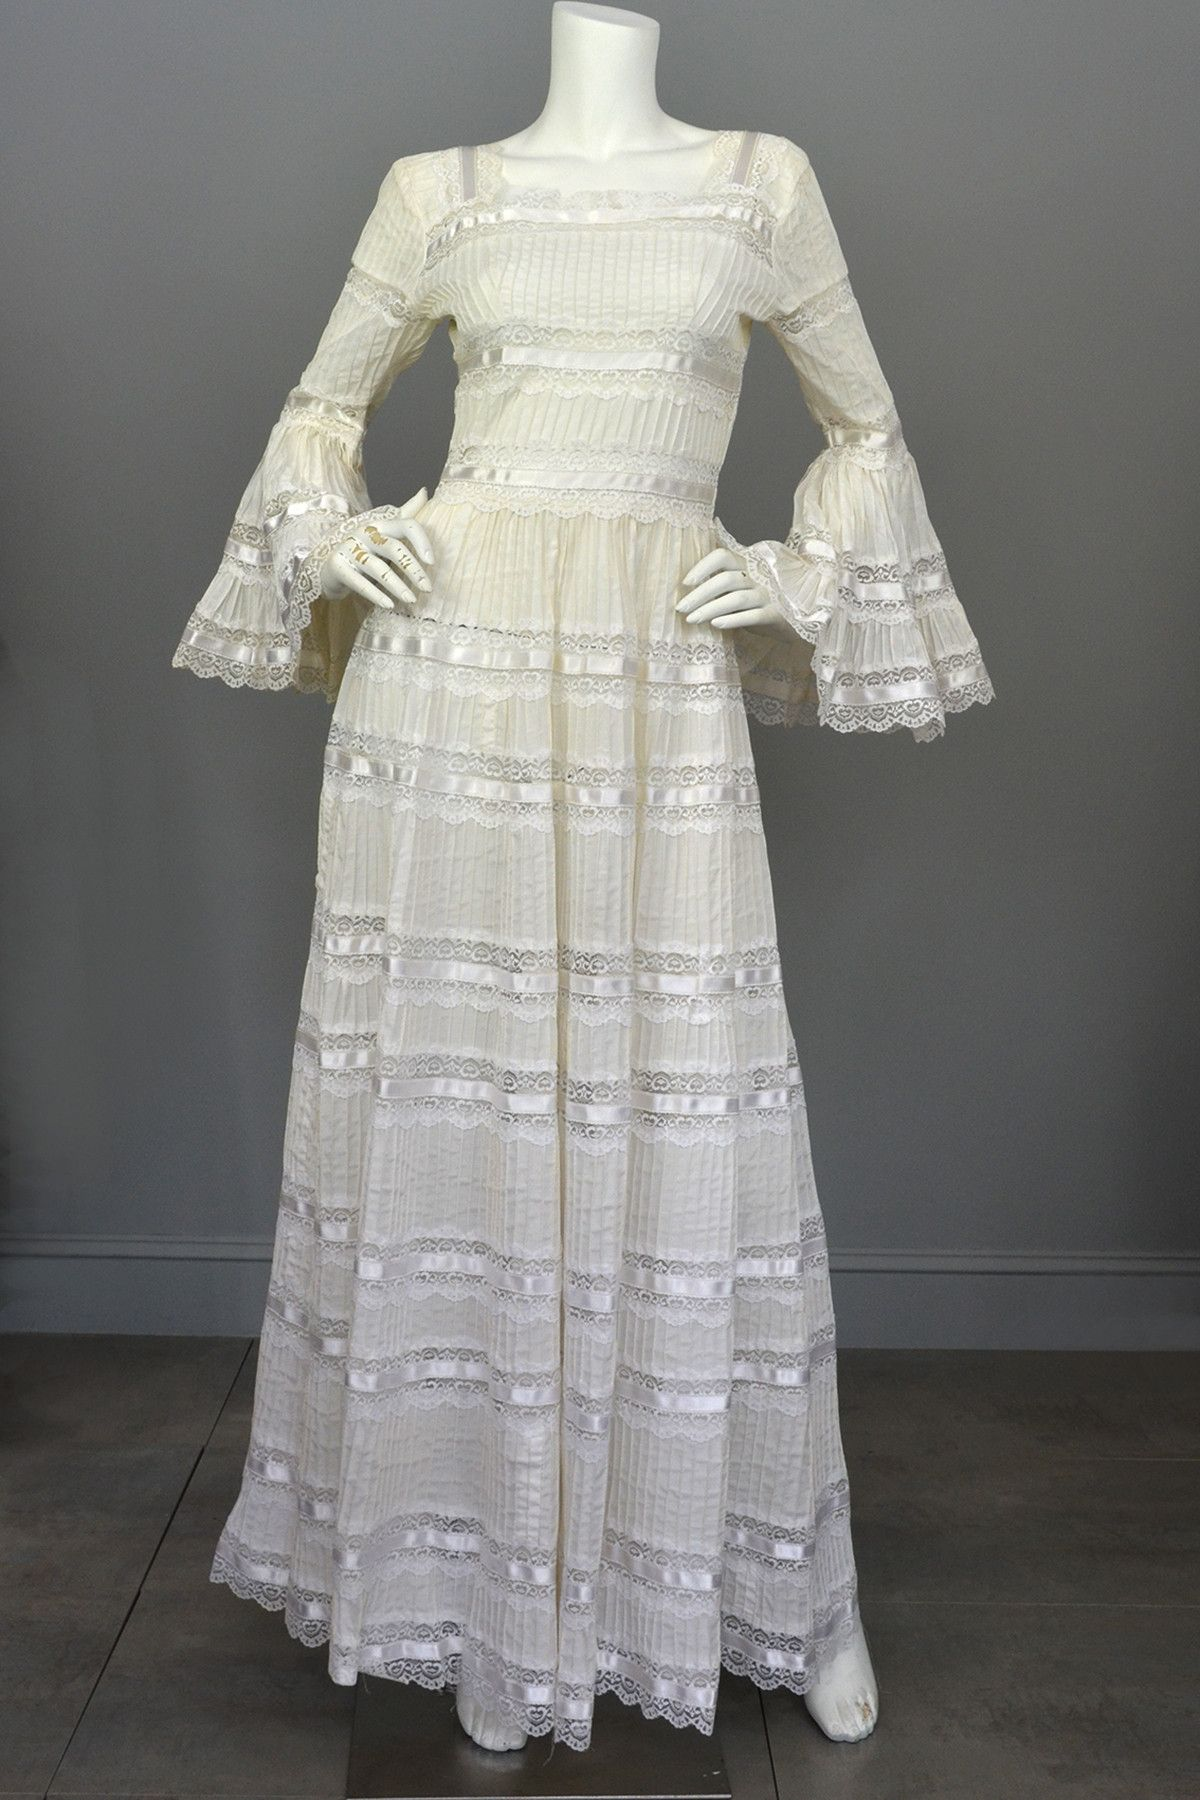 Best s Vintage Mexican Wedding Dress with Bell Sleeves and Lace from VintageVirtuosa